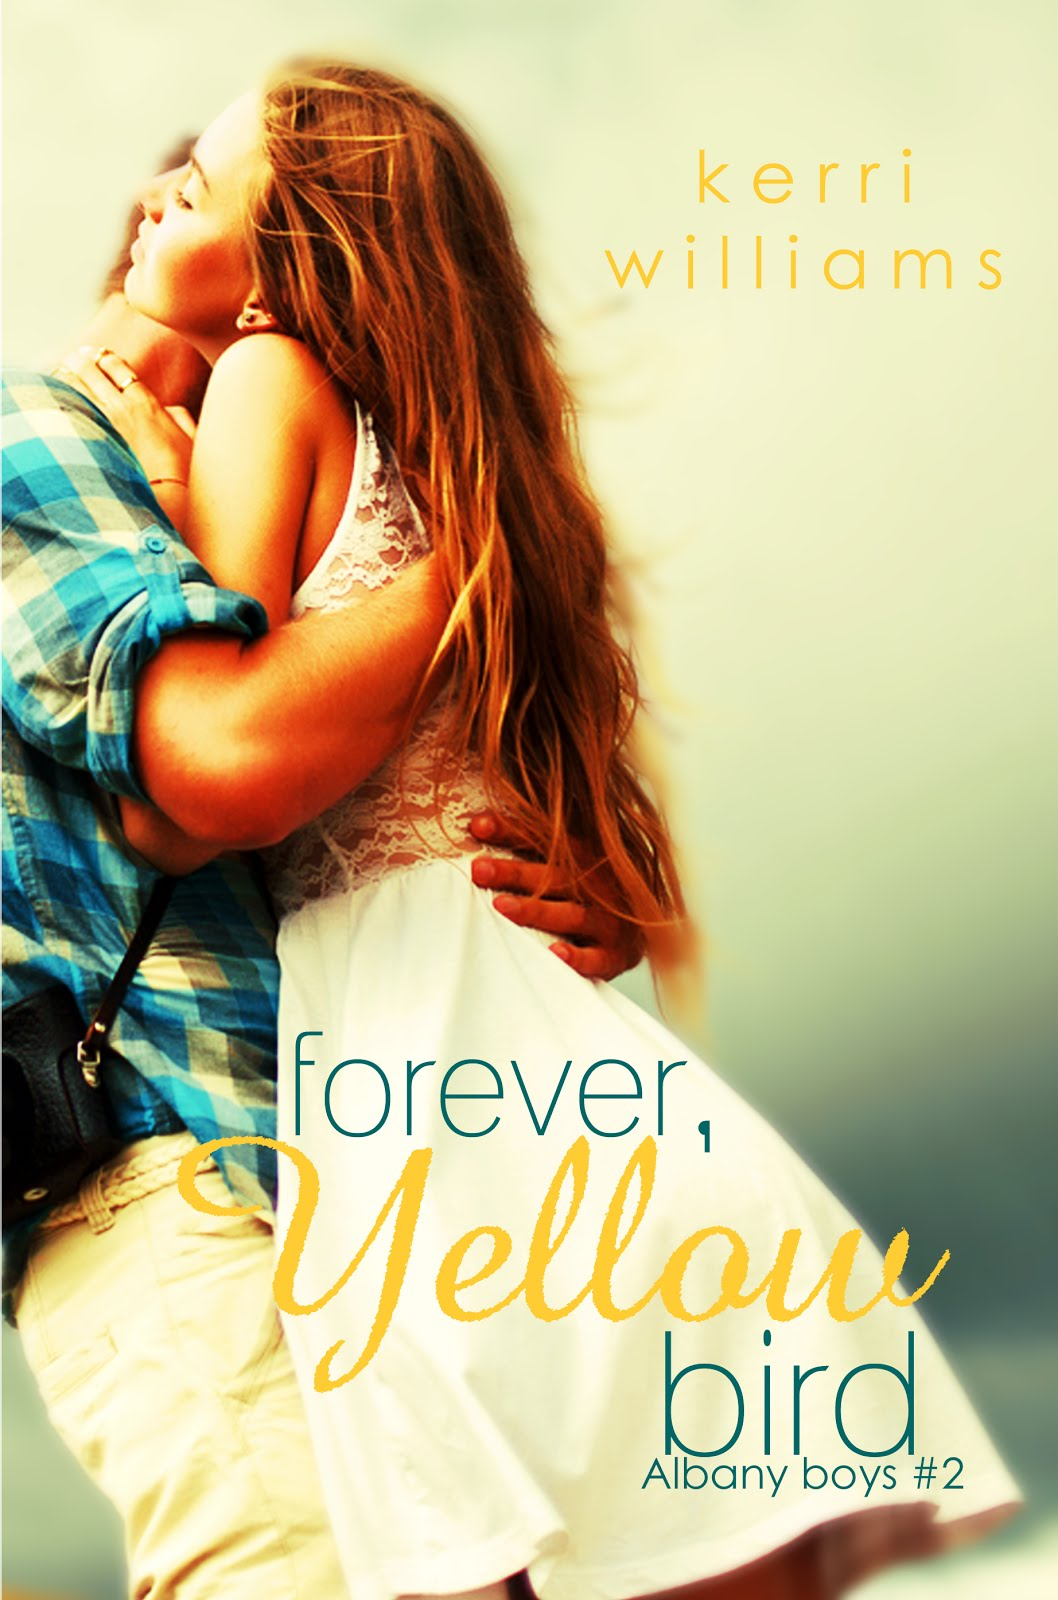 Forever, Yellow Bird (An Albany Boys novel #2)